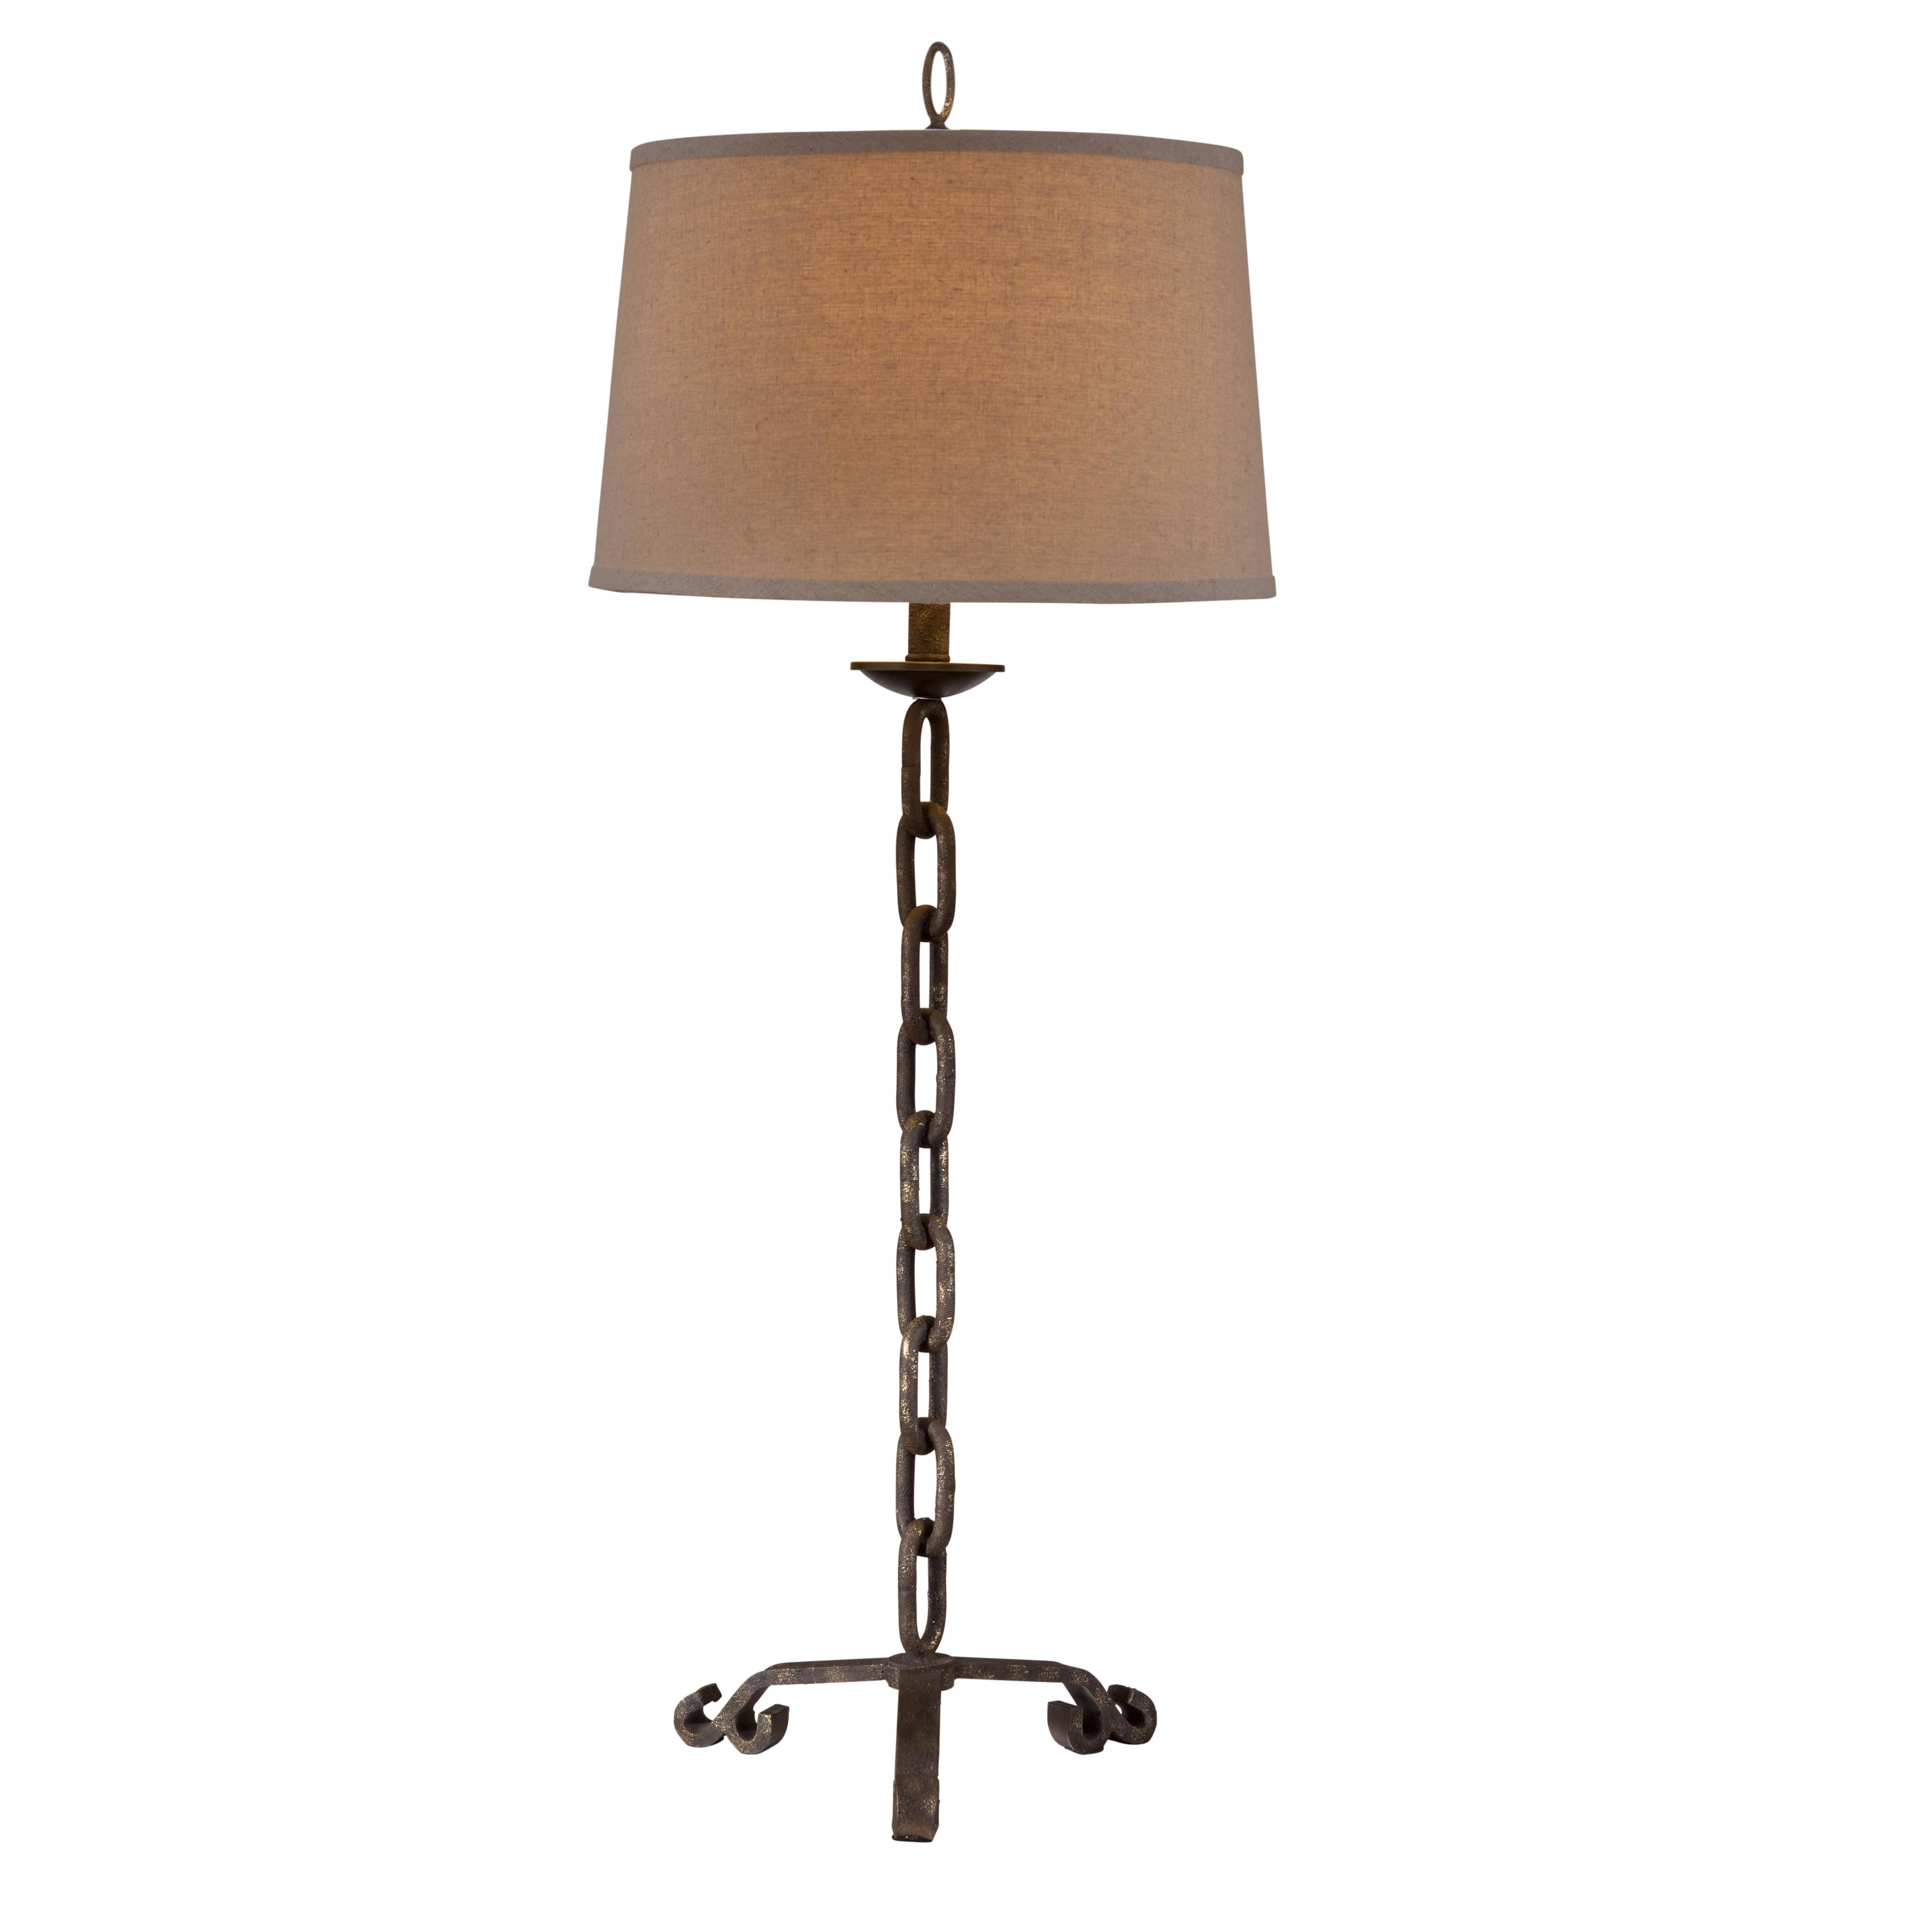 Belgian Luxe Links Table Lamp by Bassett Mirror at Alison Craig Home Furnishings